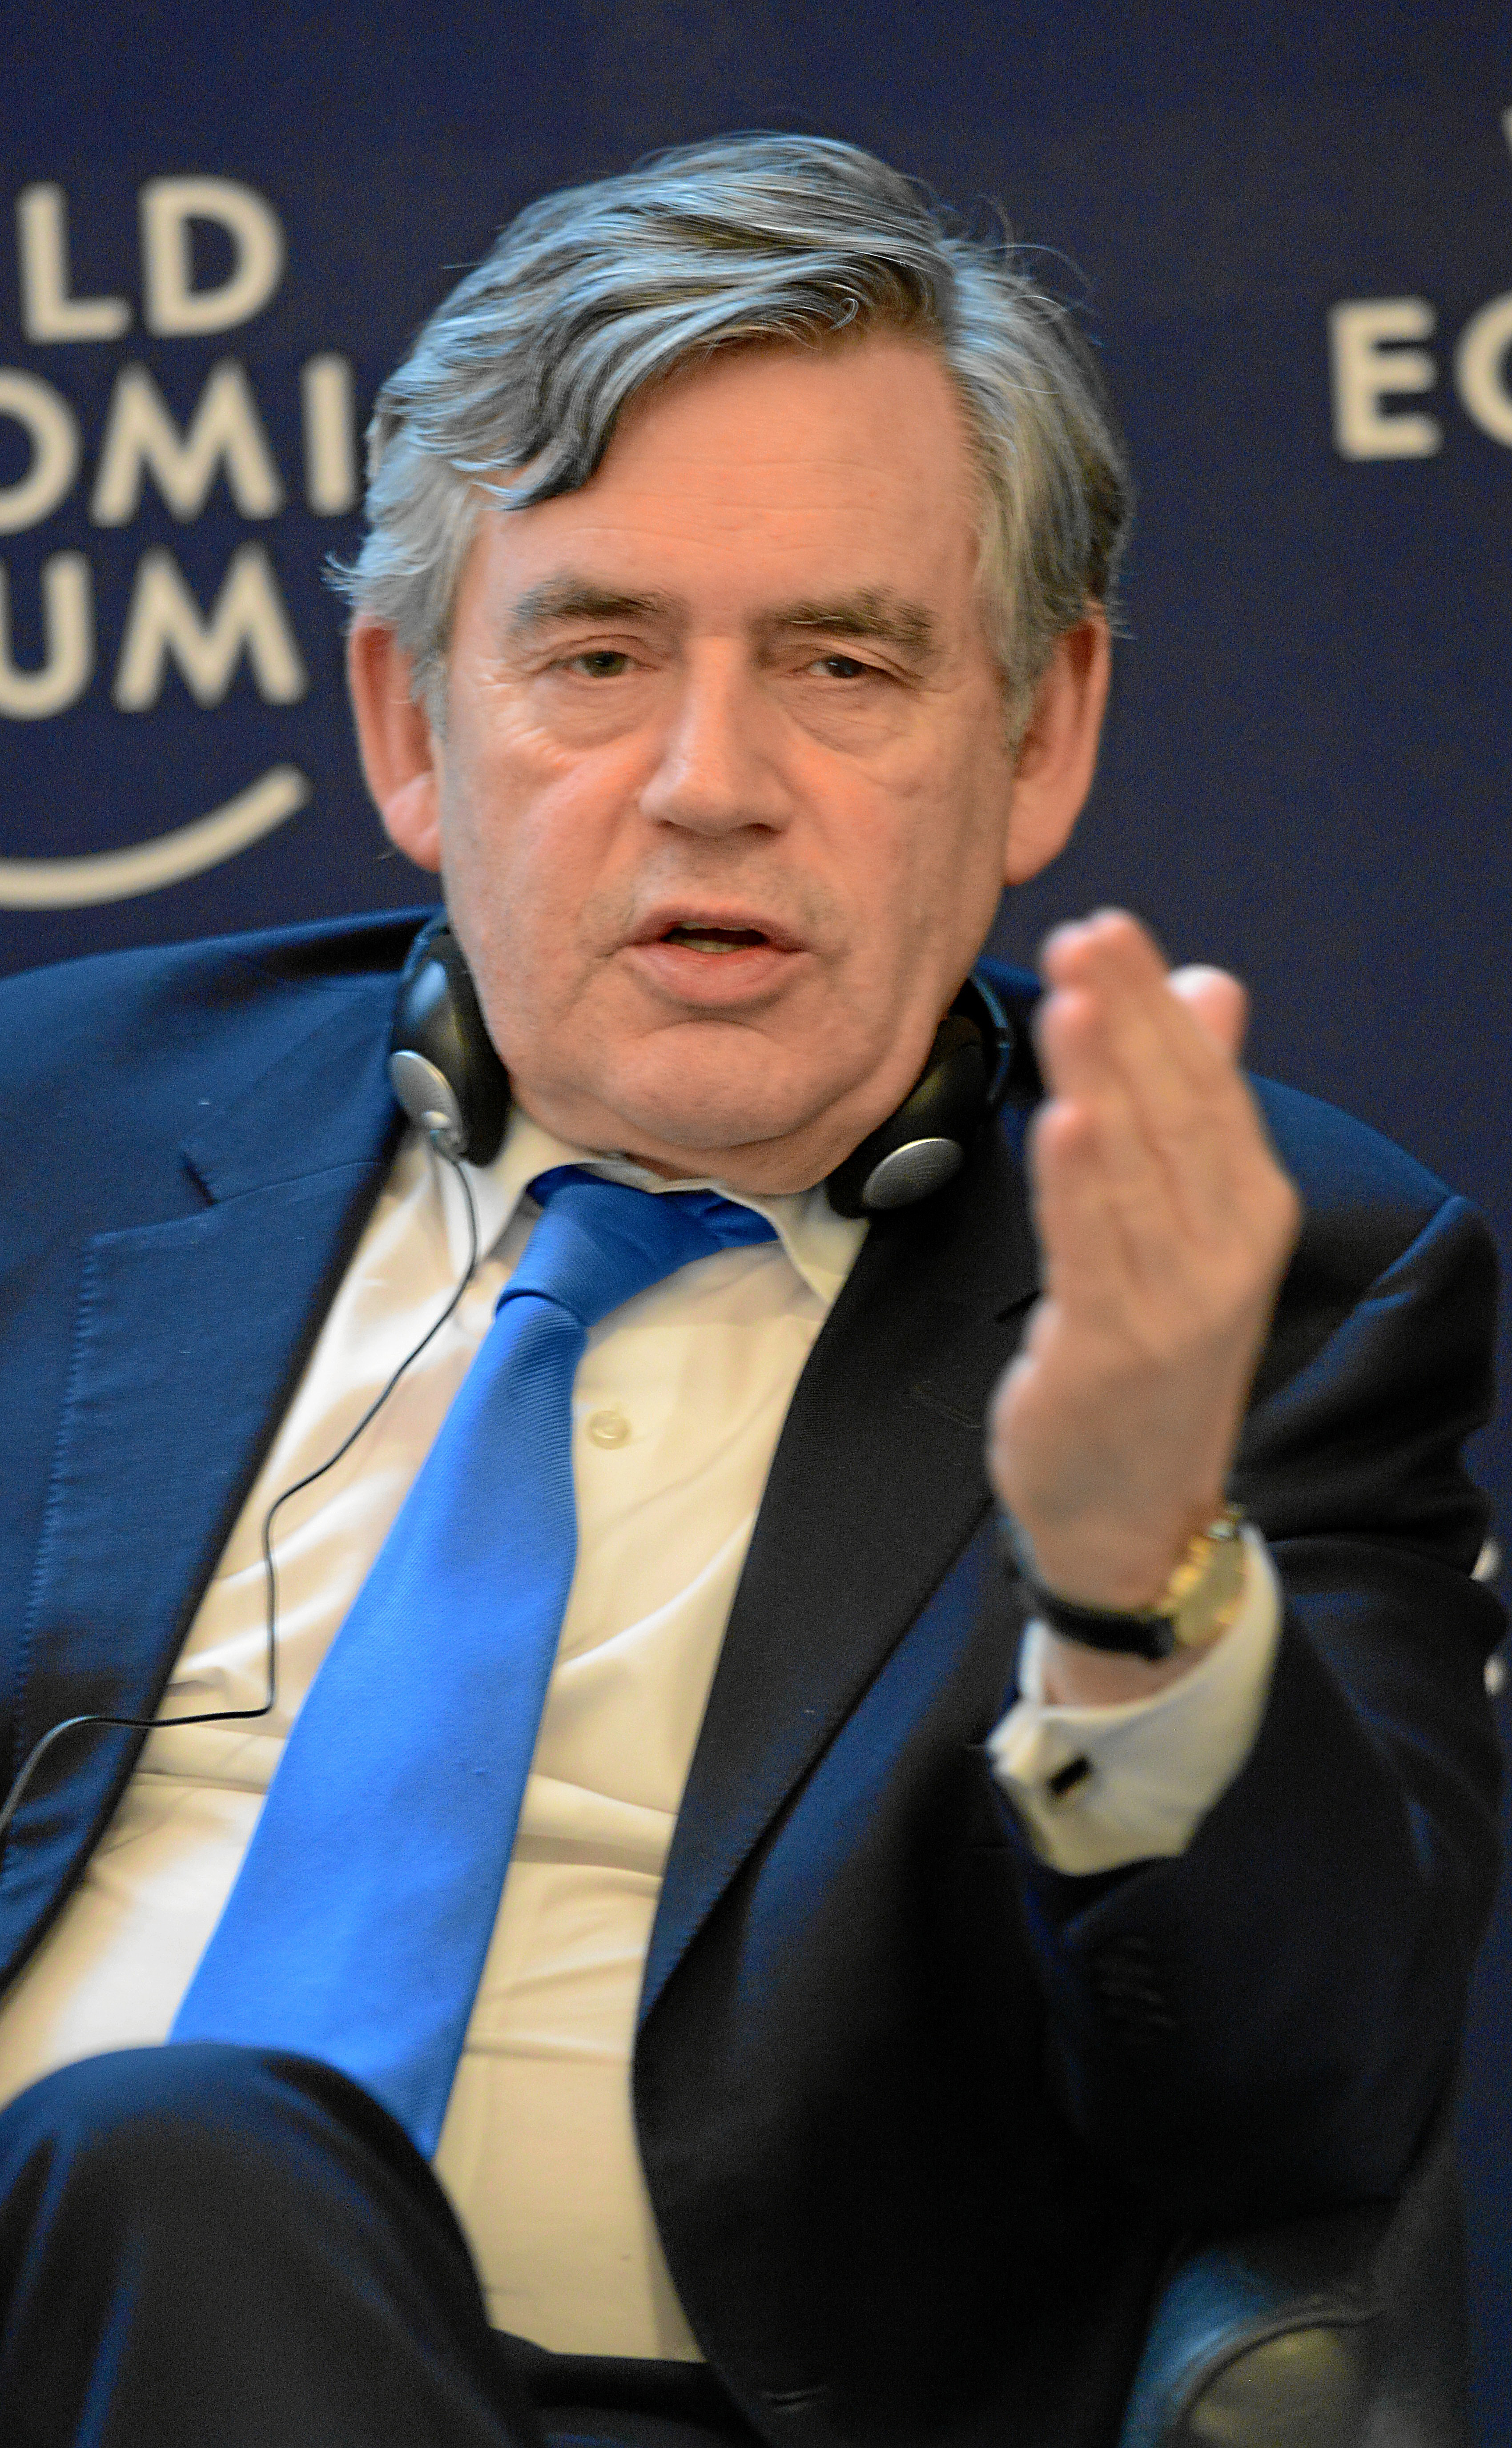 gordon brown is not an able british prime minister essay